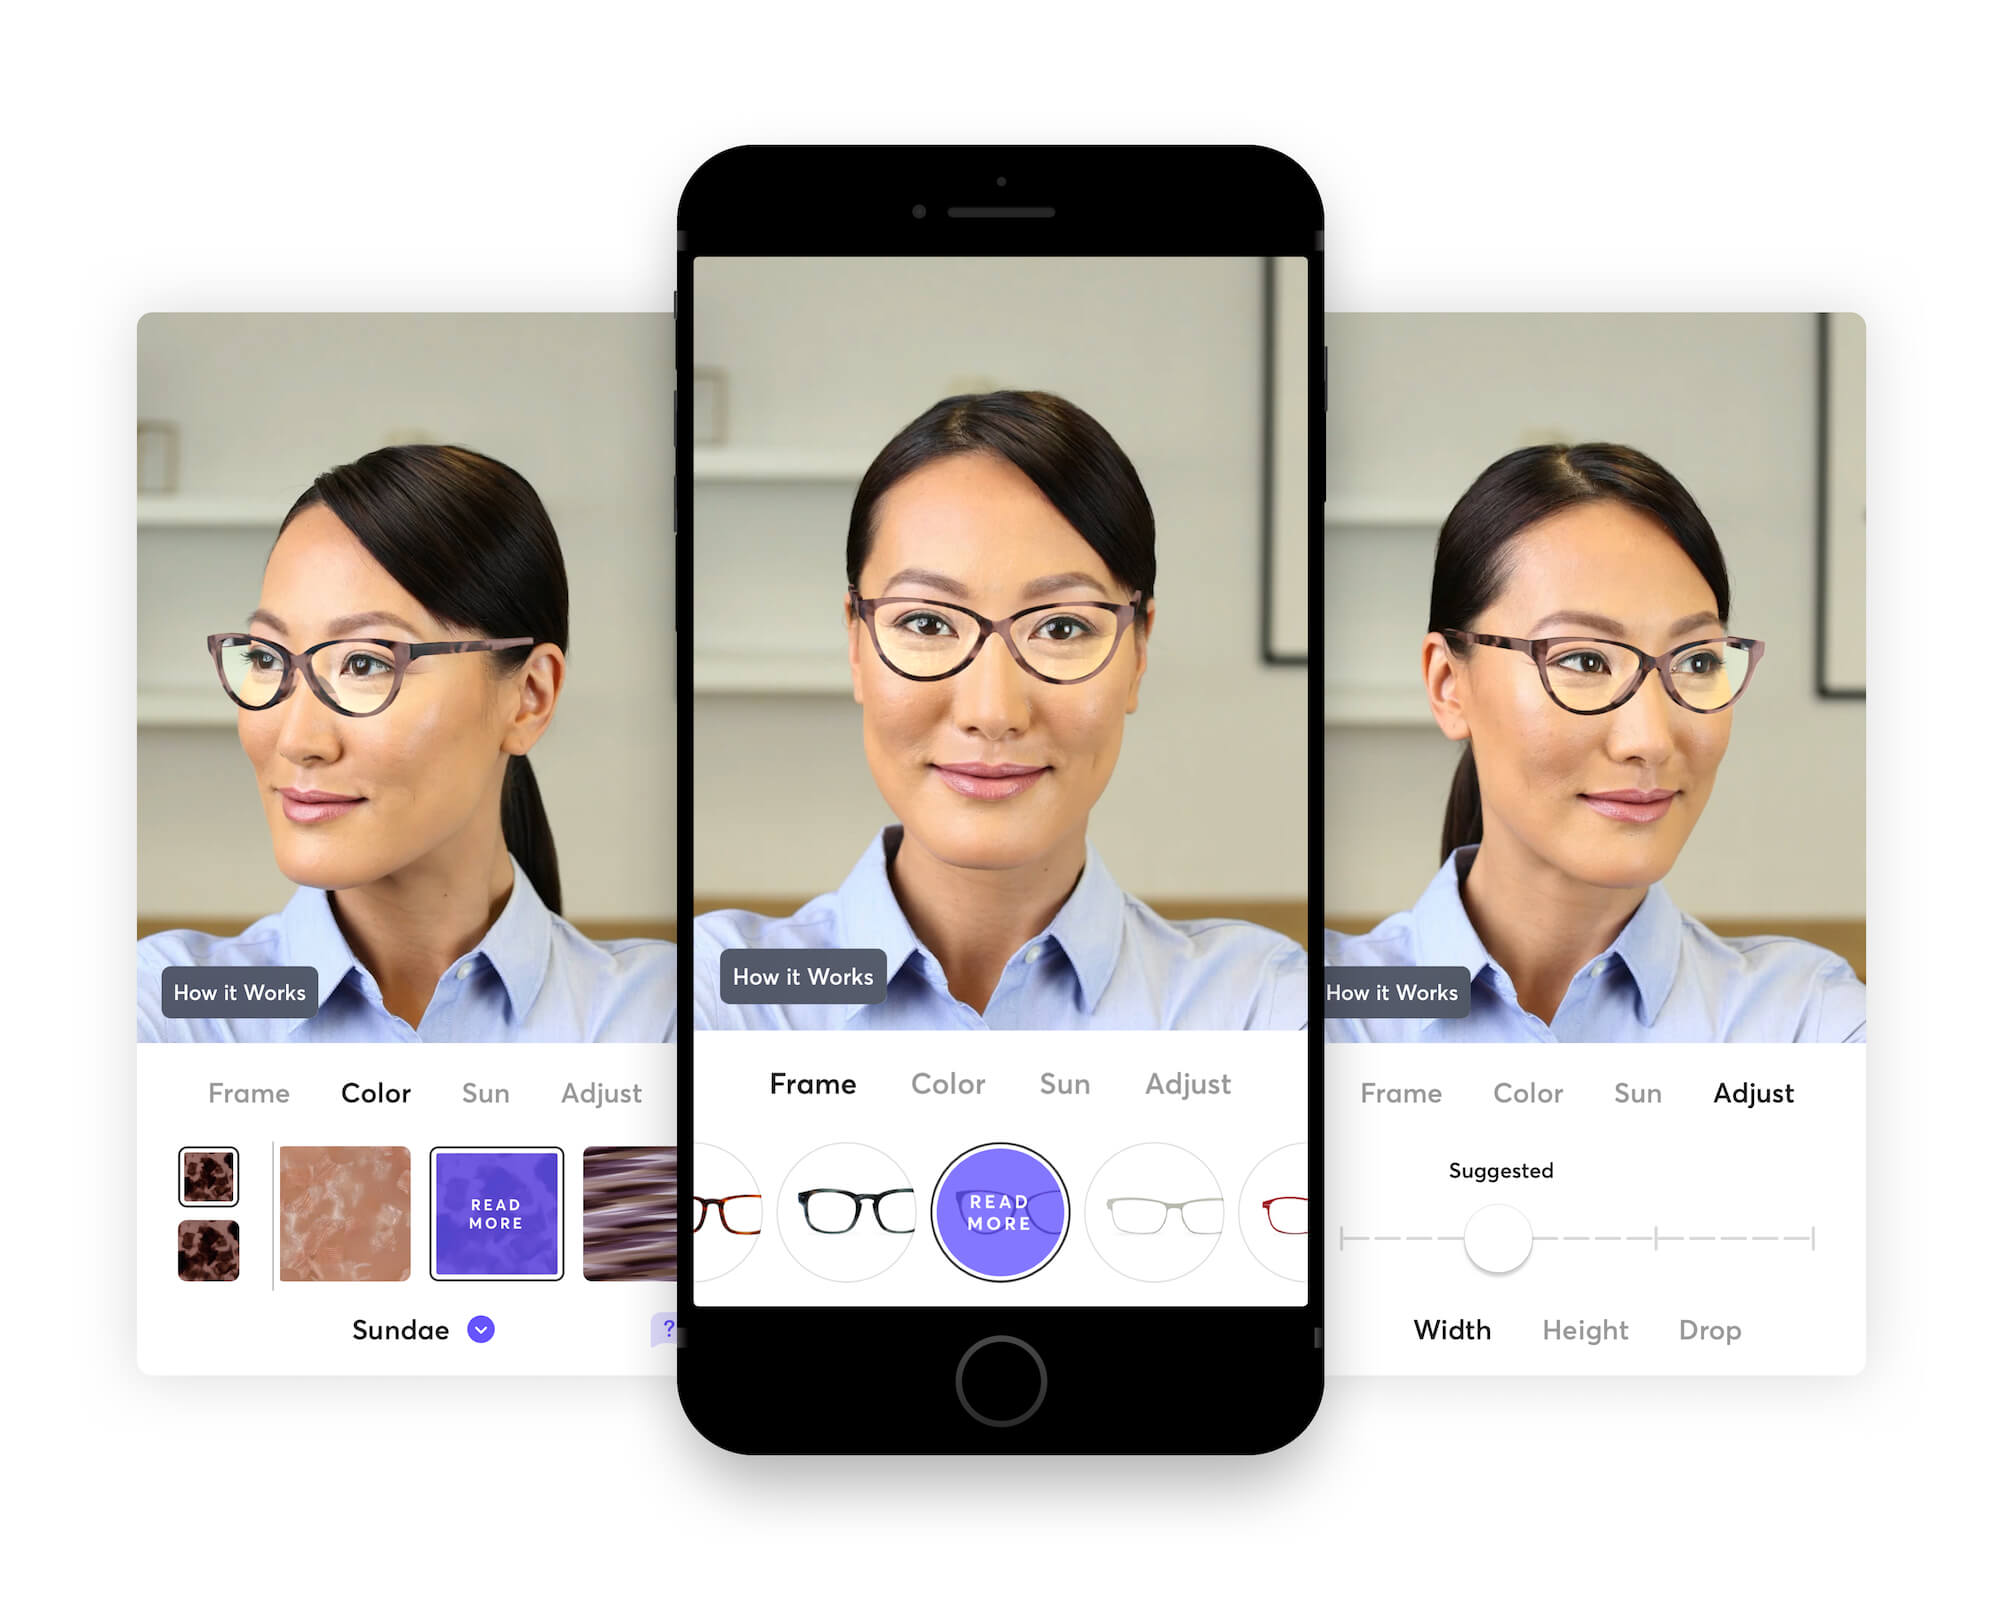 Bespoke eye glasses fitting in Topology iPhone app